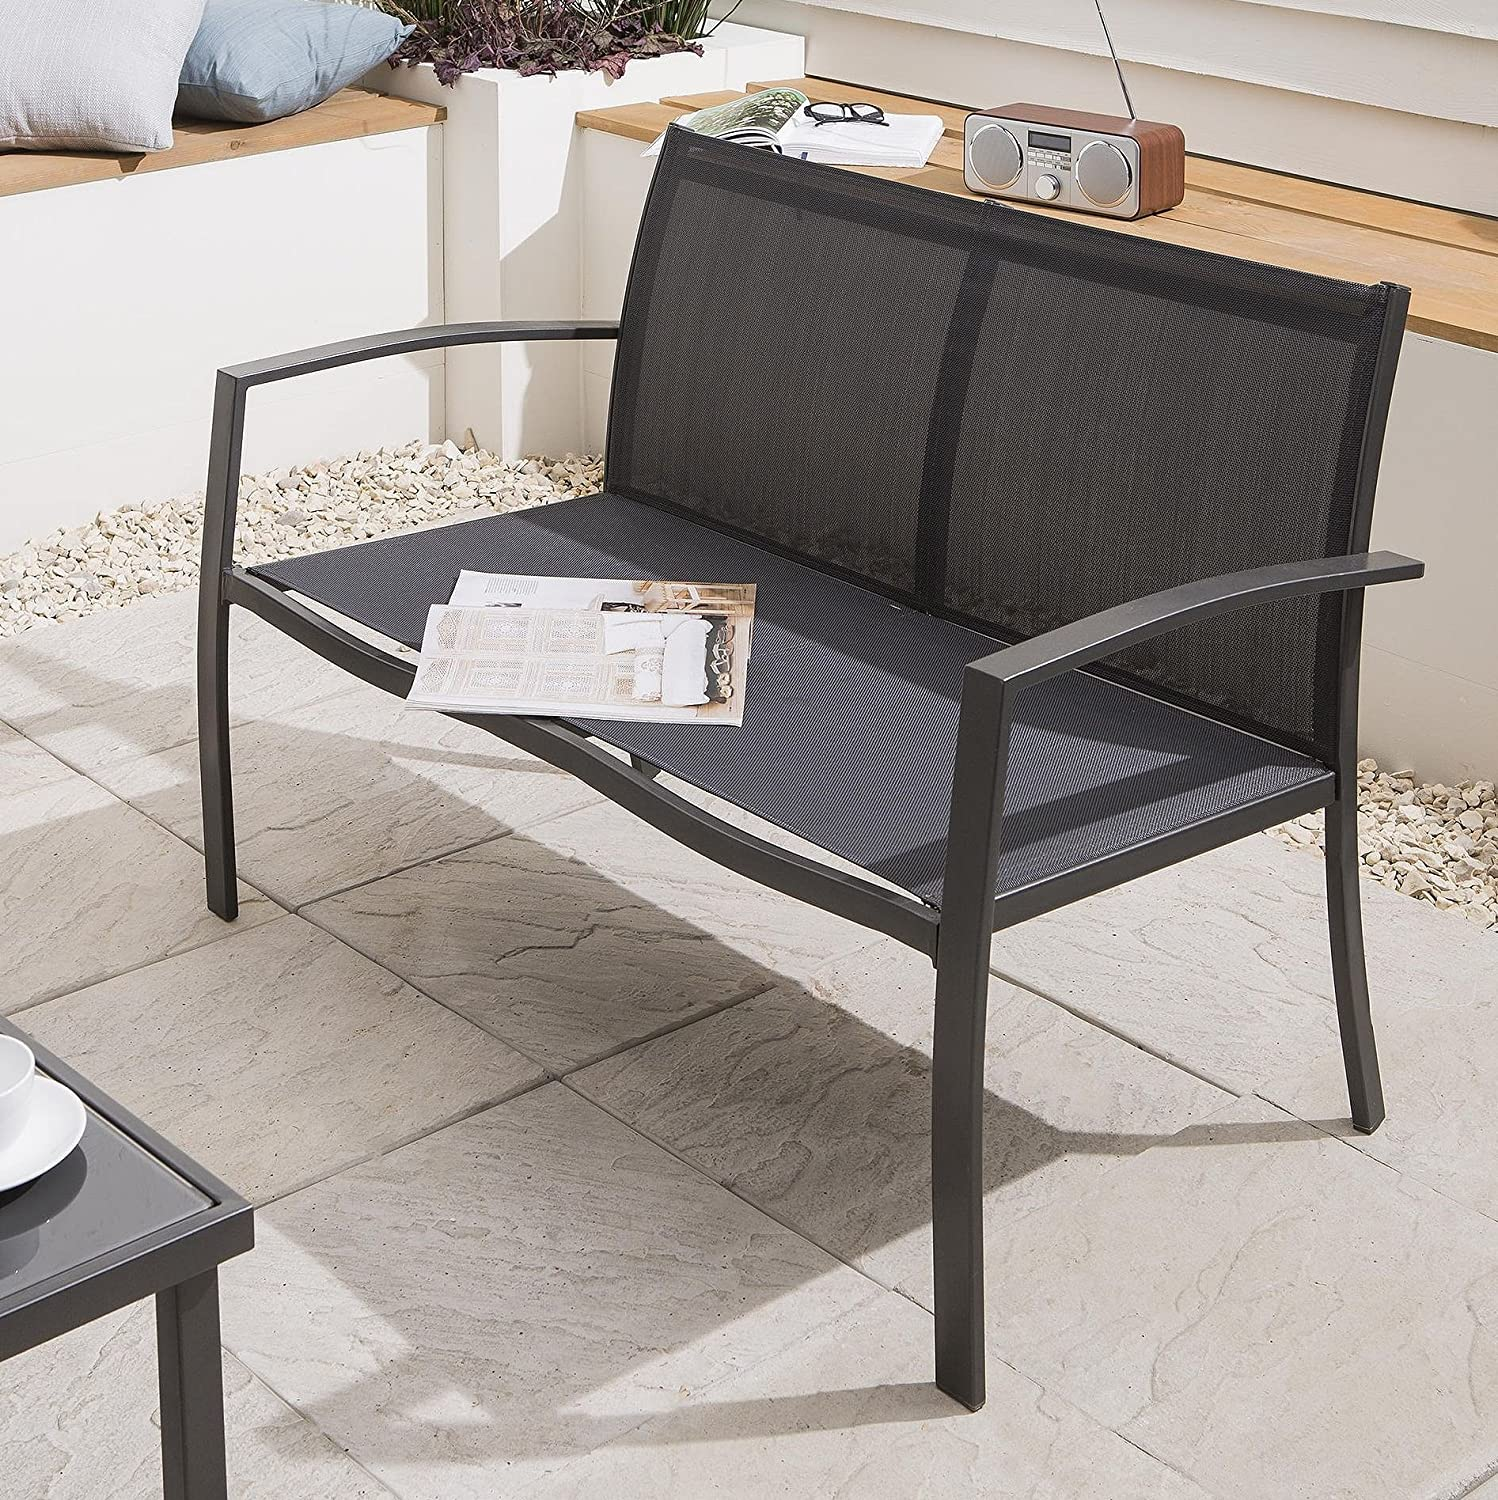 NEW Tesco 4 Piece Garden Furniture Lounge Set Charcoal Amazon